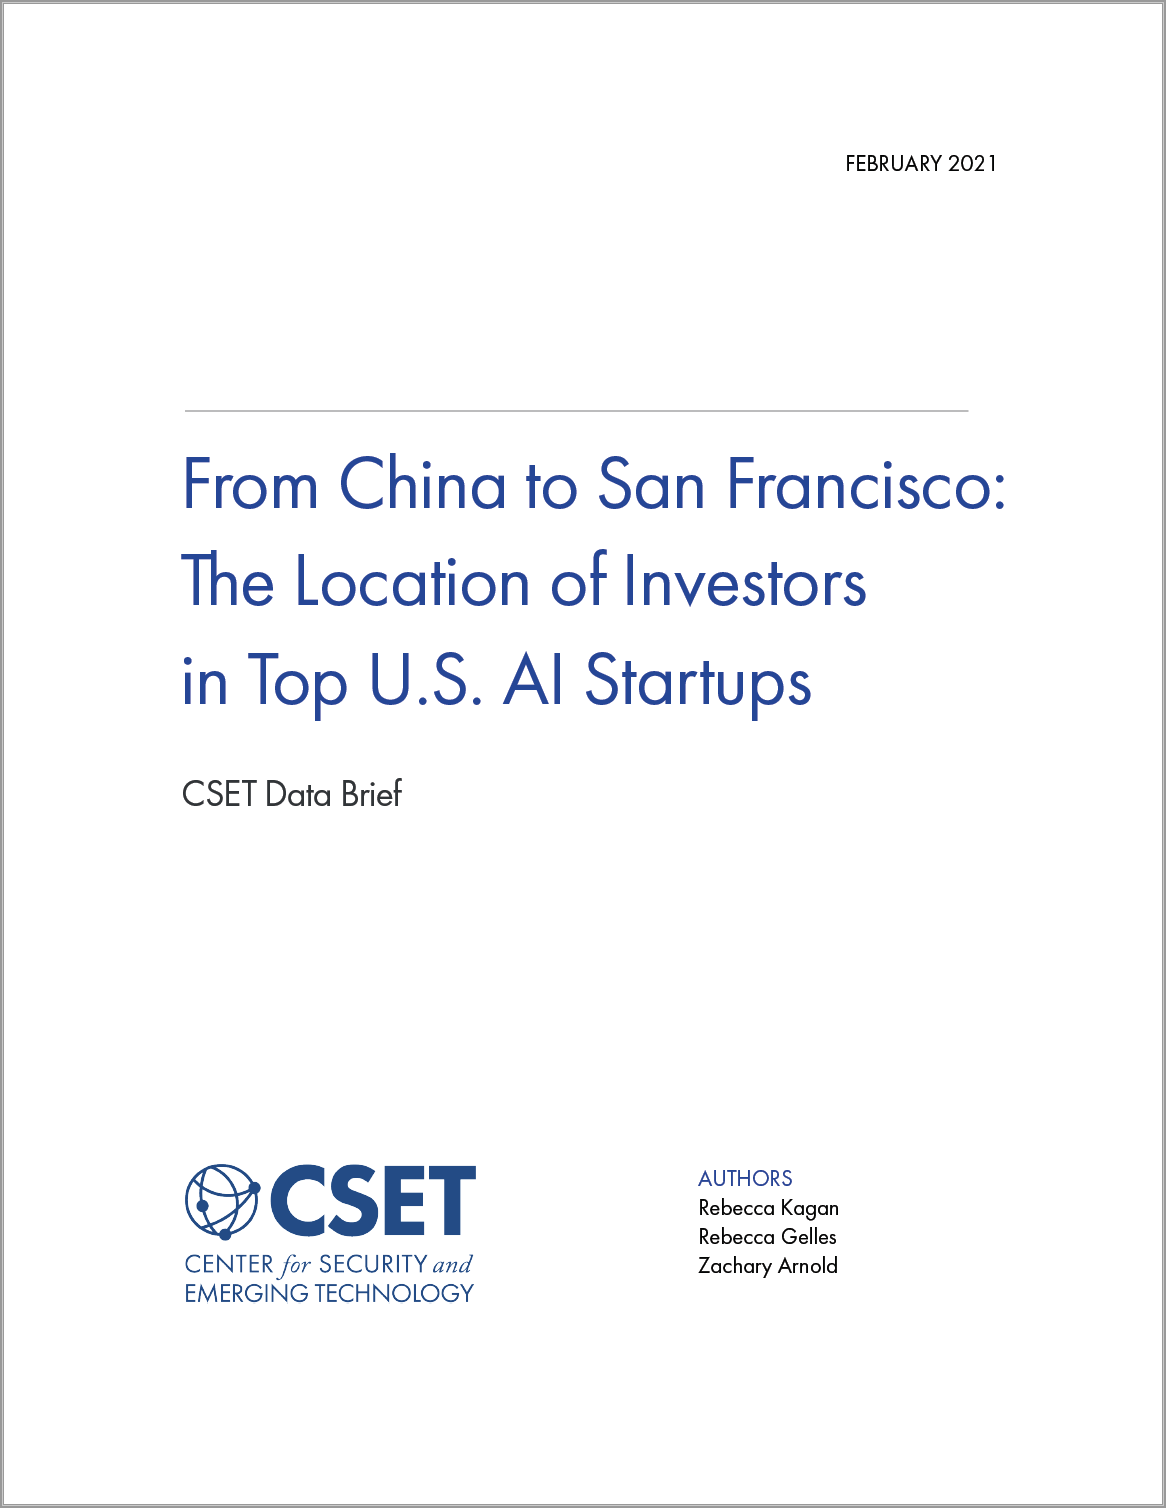 CSET - From China to San Francisco- The Location of Investors in Top U.S. AI Startups Image